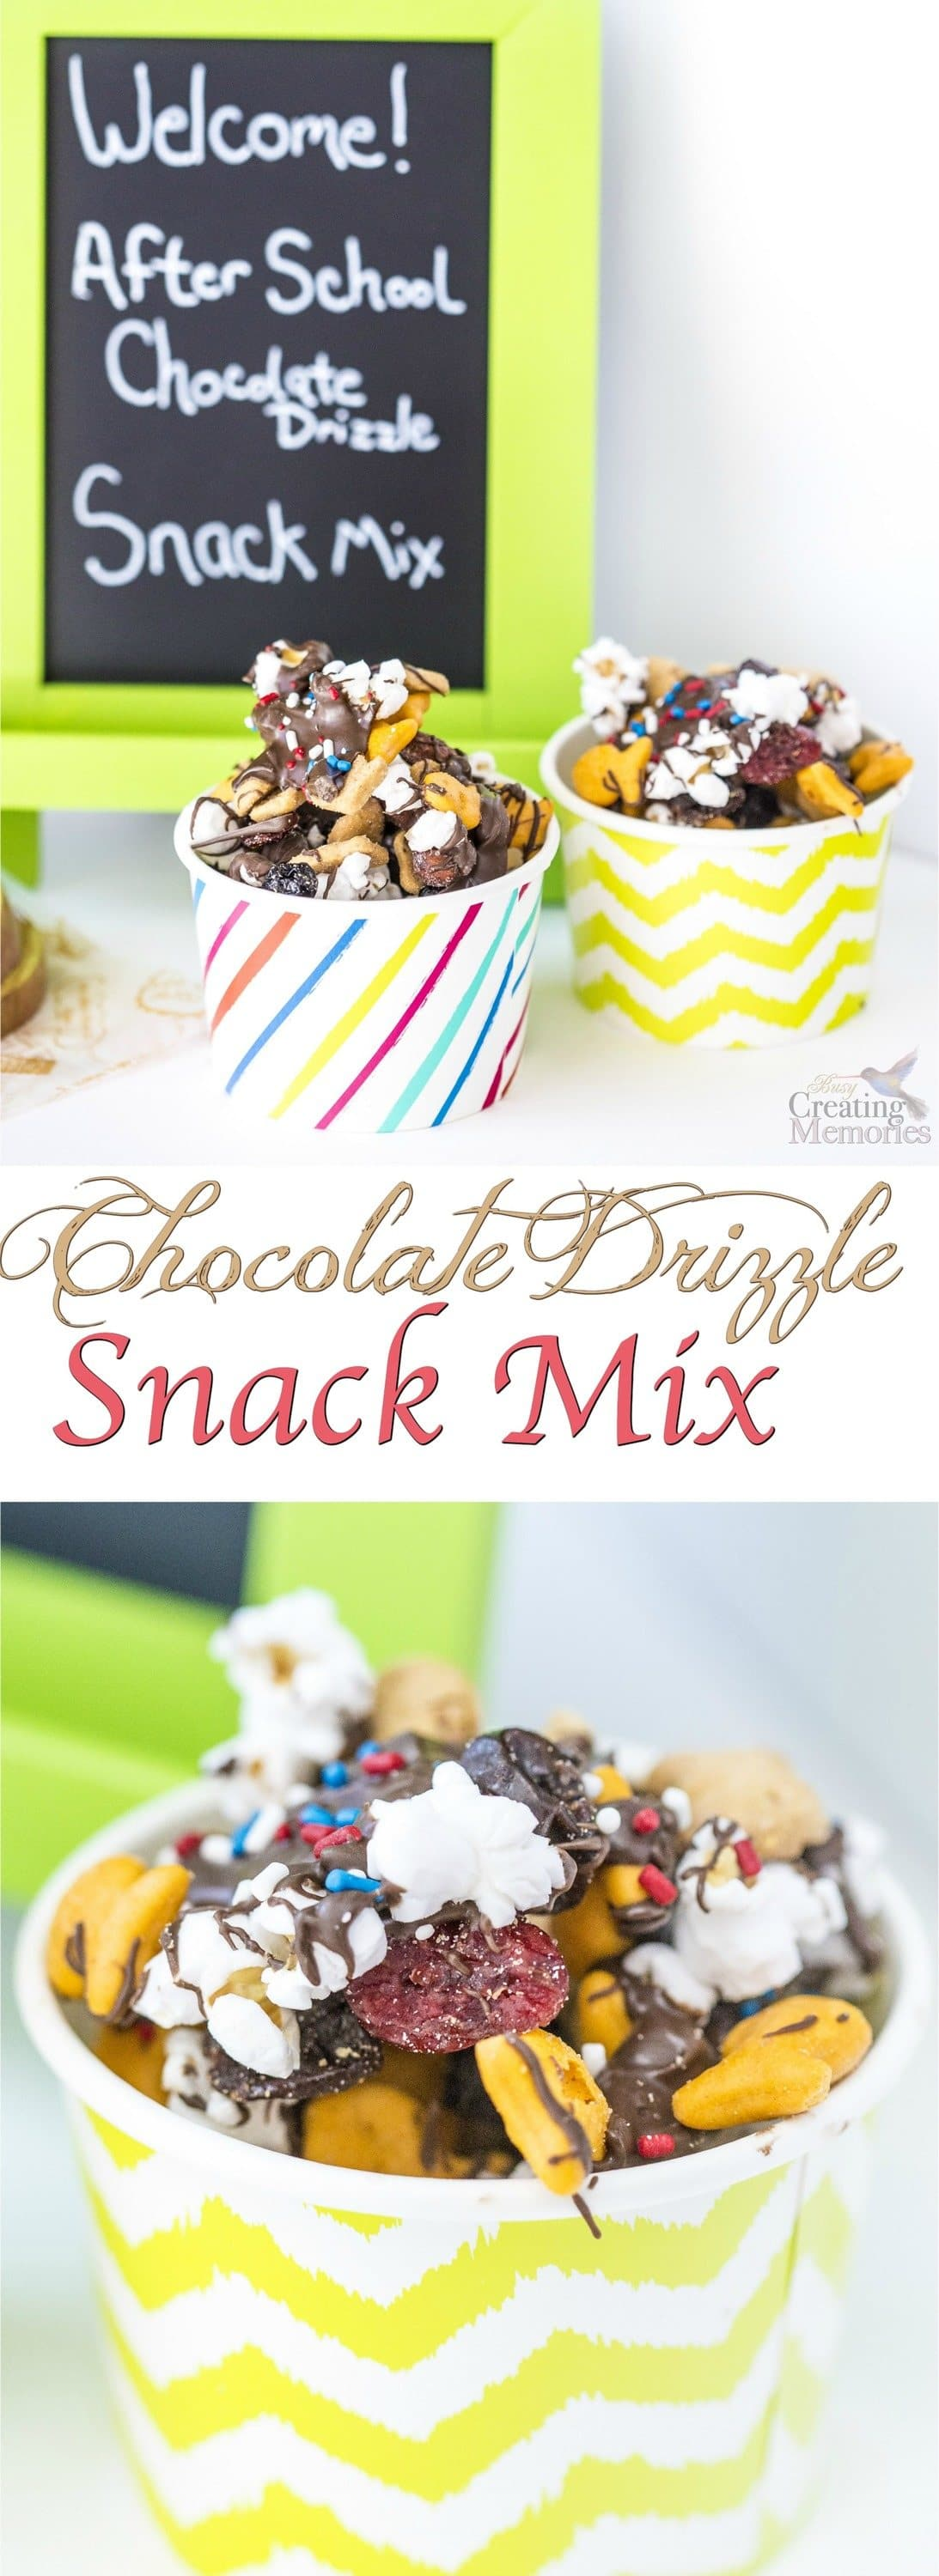 A smarter choice Snack Mix full of your family's favorites! Similar to a White Trash Treat, only with smarter ingredients. Great after school snack, travel mix, or for weekend movie party!